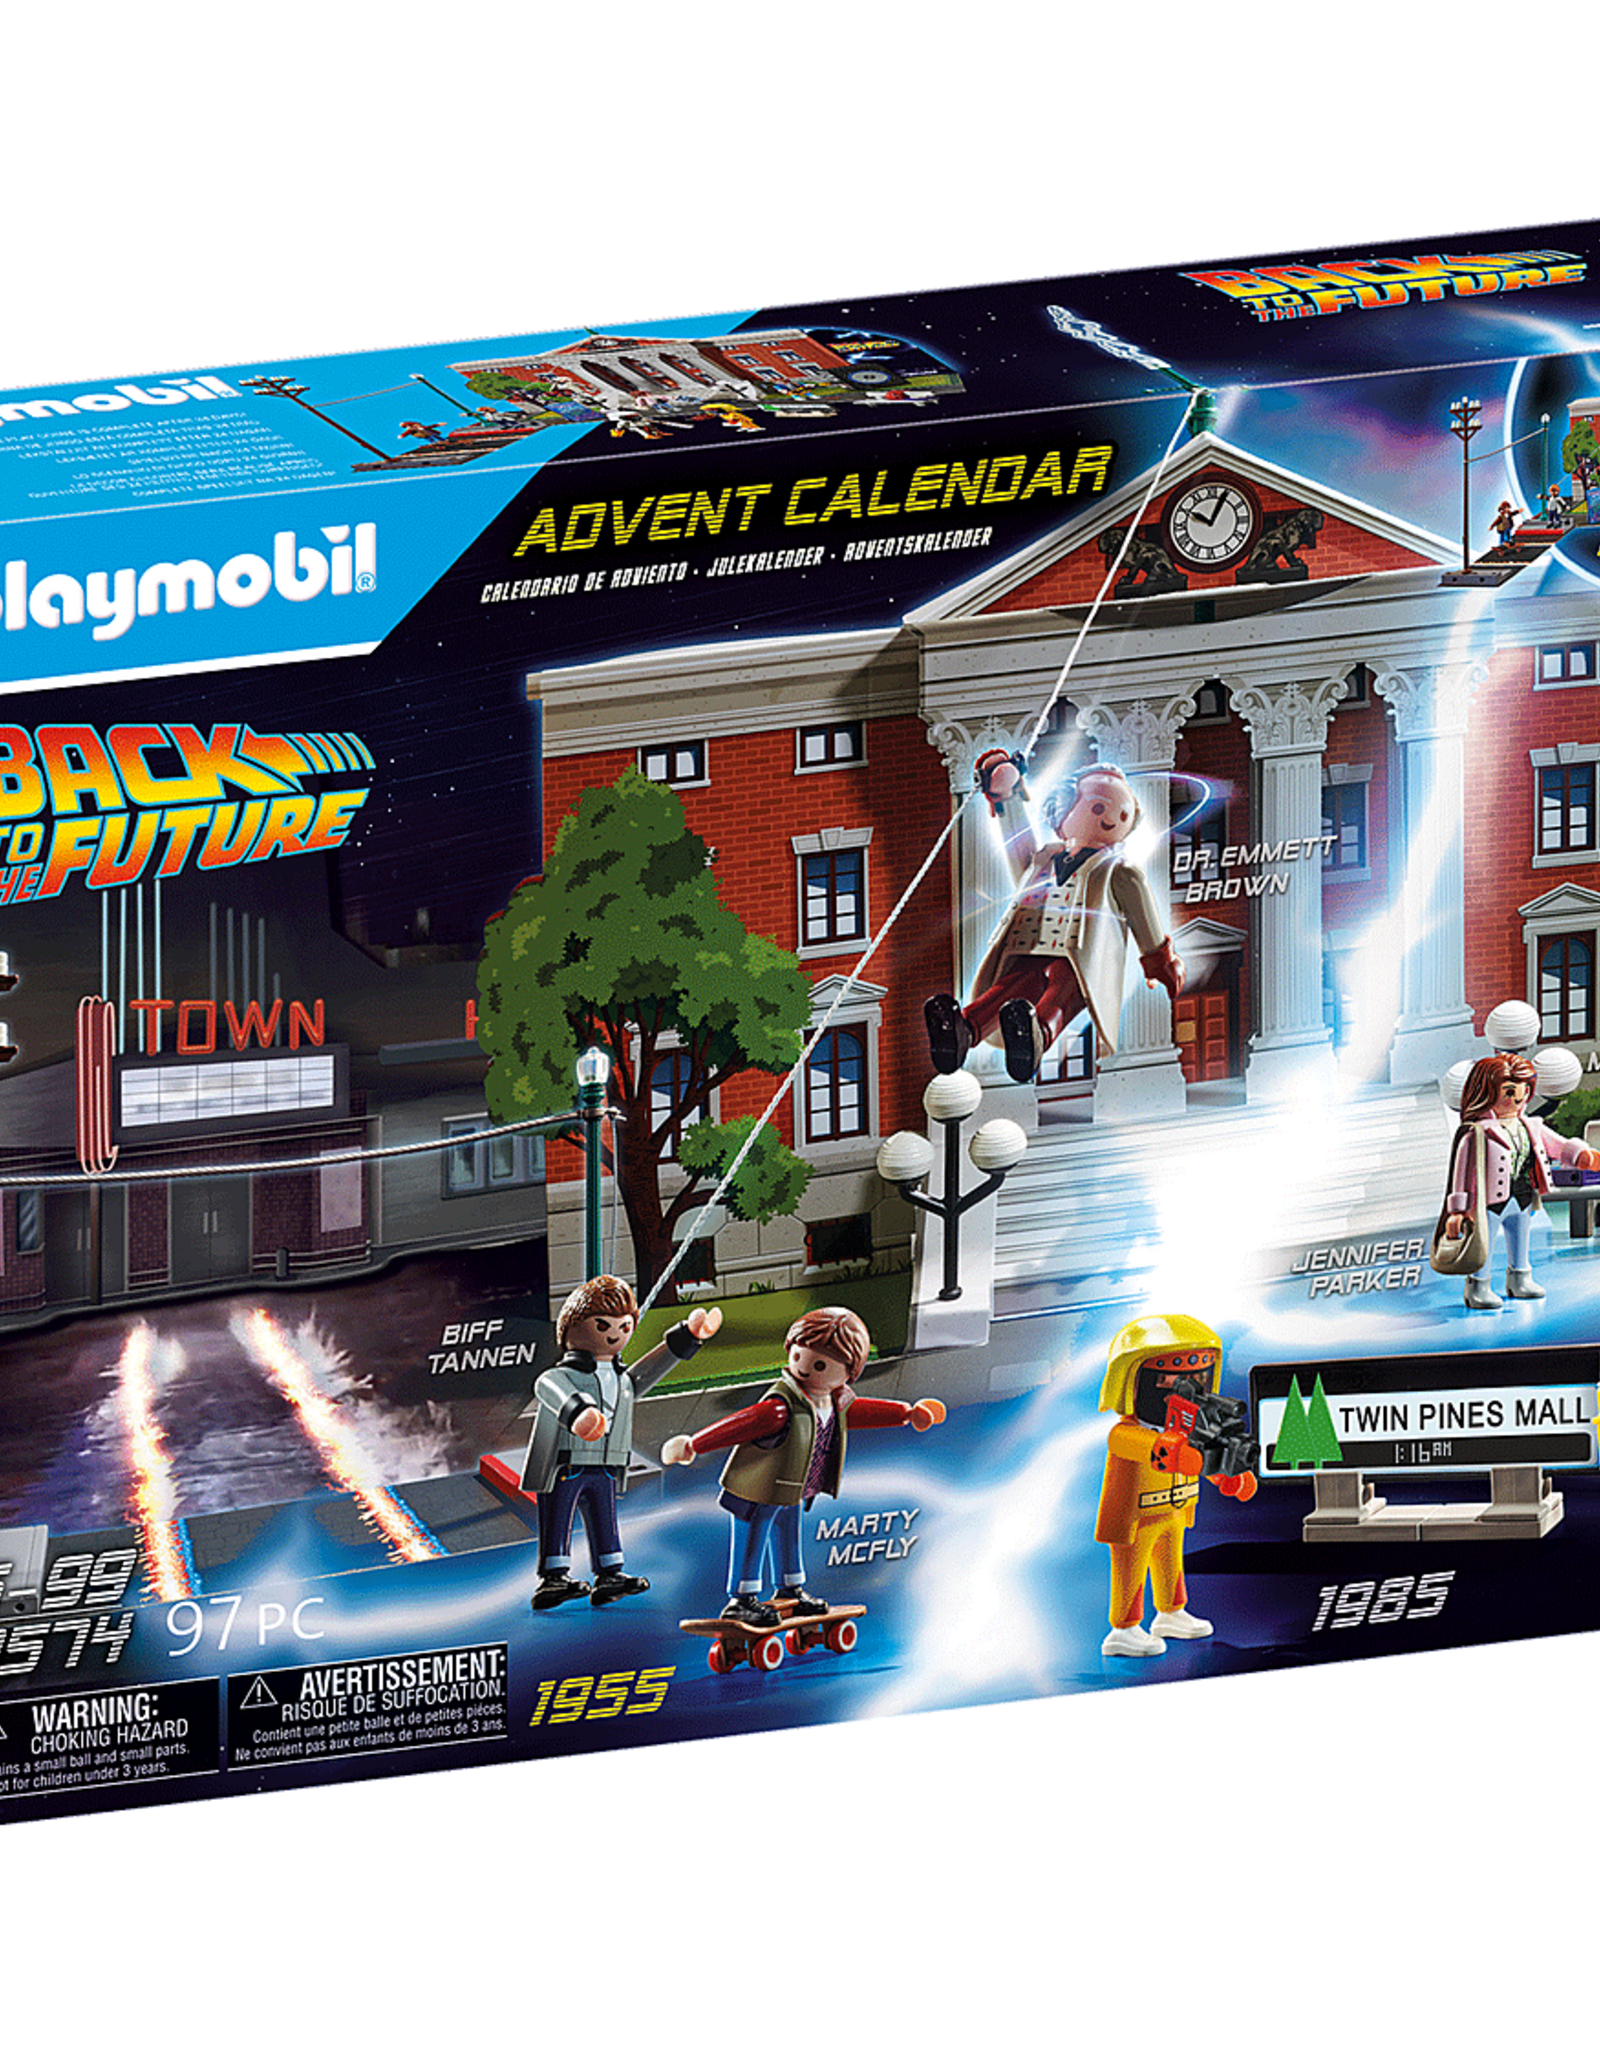 Playmobil PM Back to the Future Advent Calendar